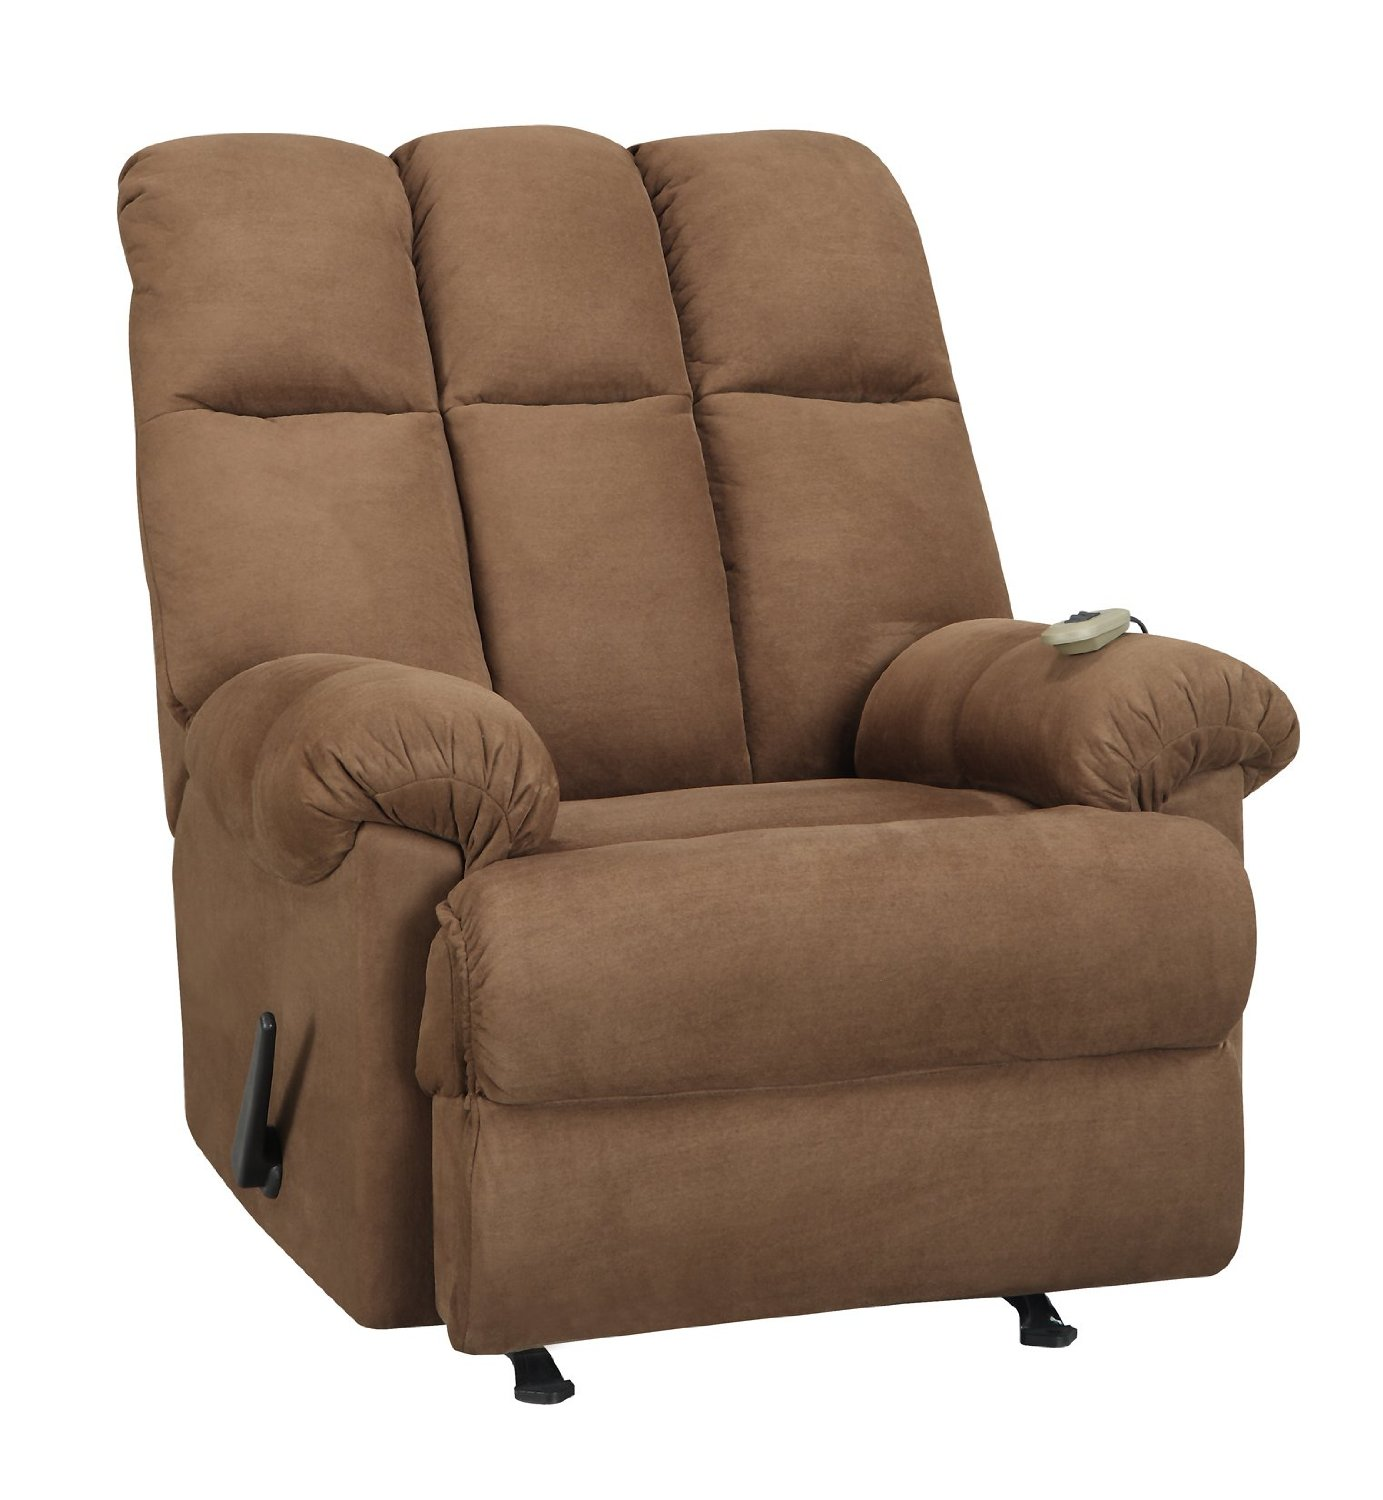 Dorel Living Padded Massage Recliner and Rocker